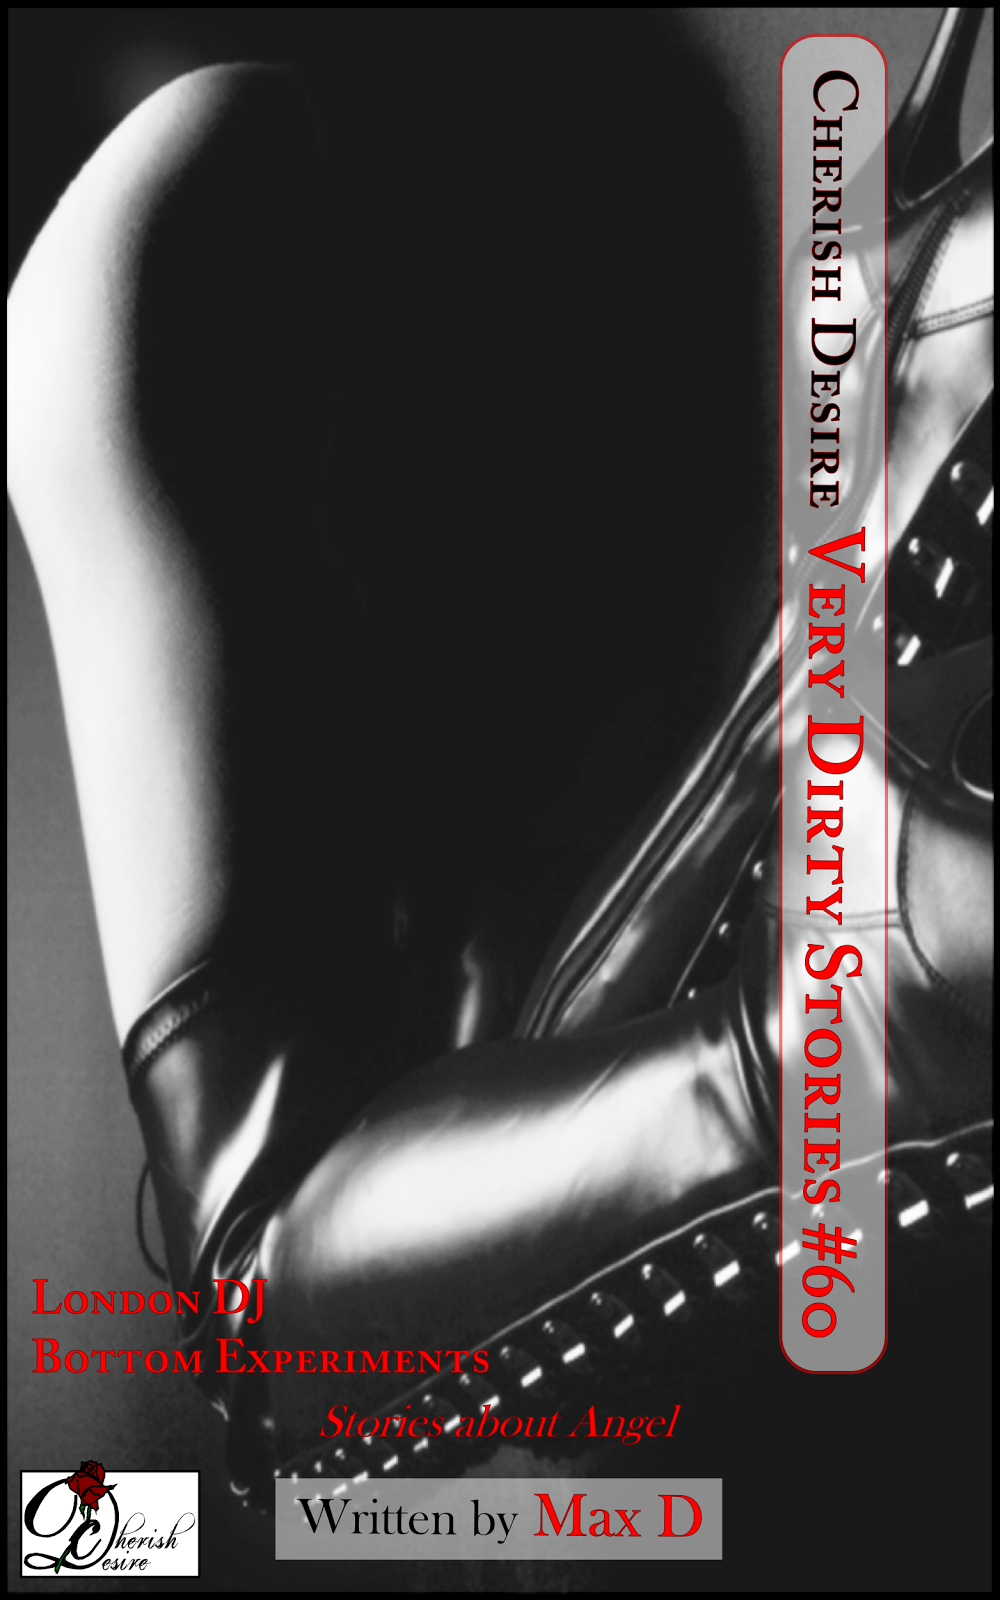 Cherish Desire: Very Dirty Stories #60, Max D, erotica